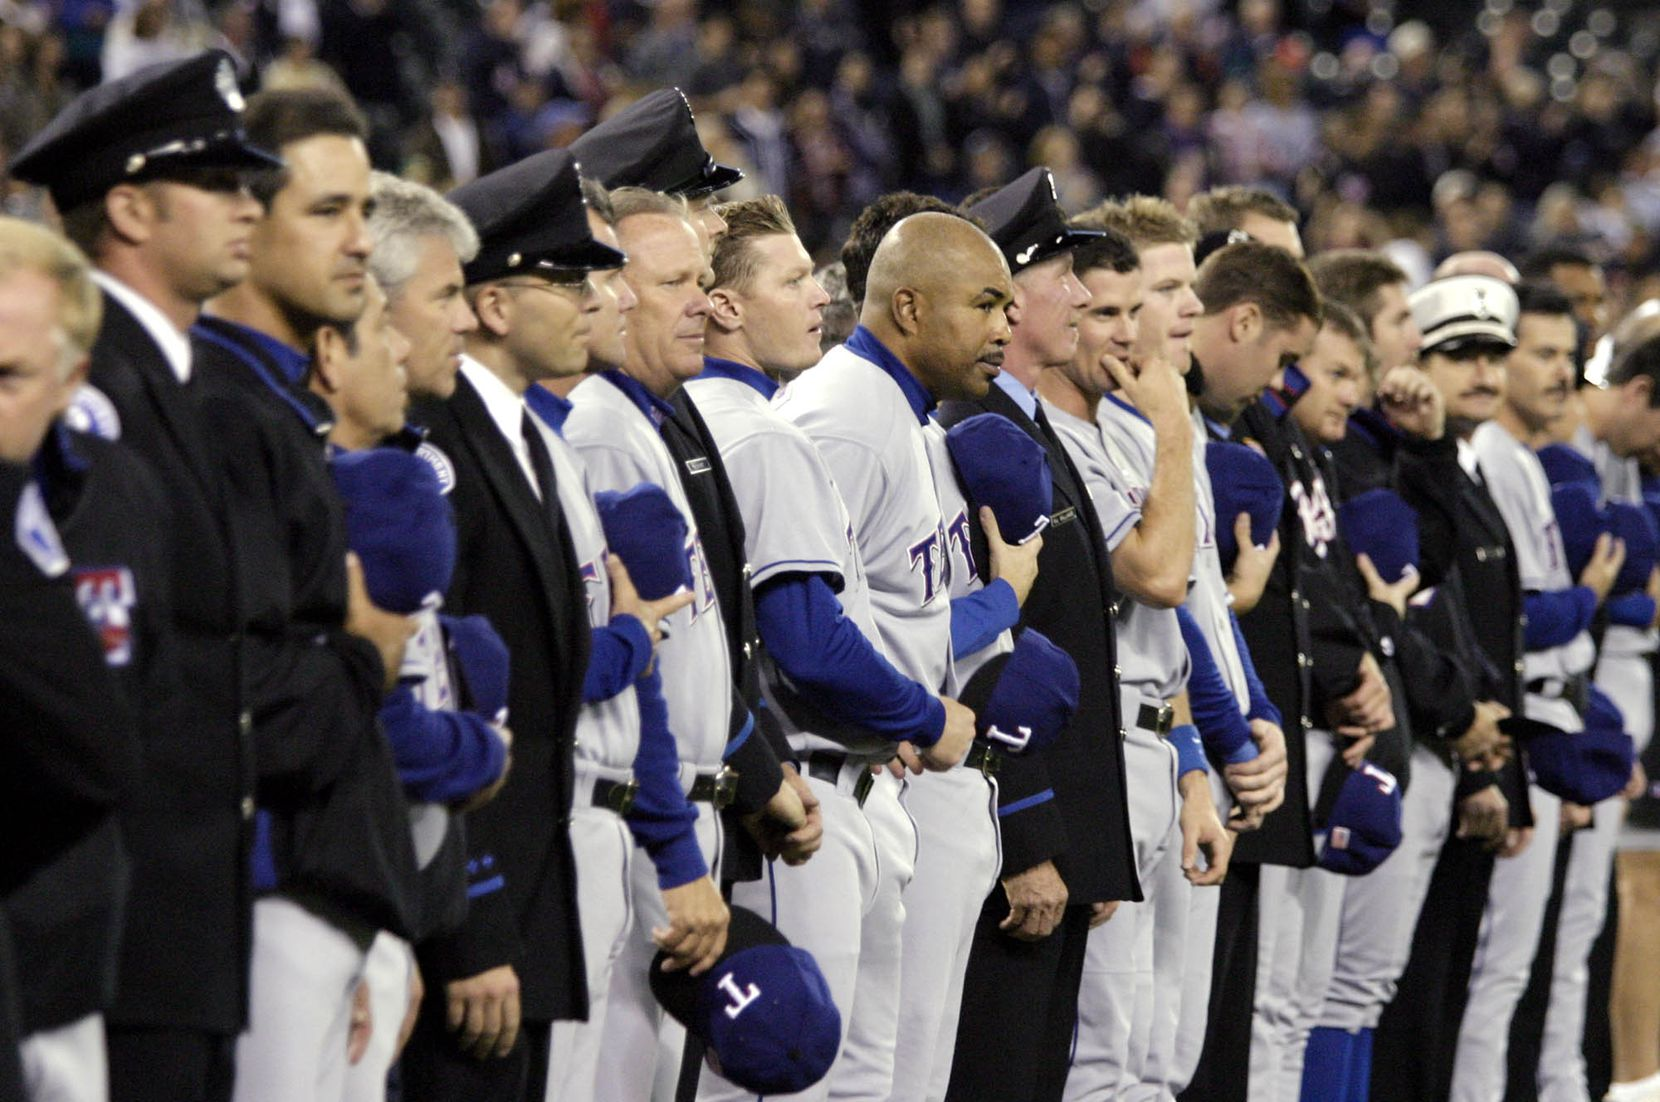 Members of the Texas Rangers stand interspersed with firefighters, EMTs and police from the Seattle area during a ceremony to remember those who died in the terrorist attacks of Sept. 11, 2001, before the game between the Seattle Mariners and the Texas Rangers in Seattle, Thursday, Sept. 11, 2003.